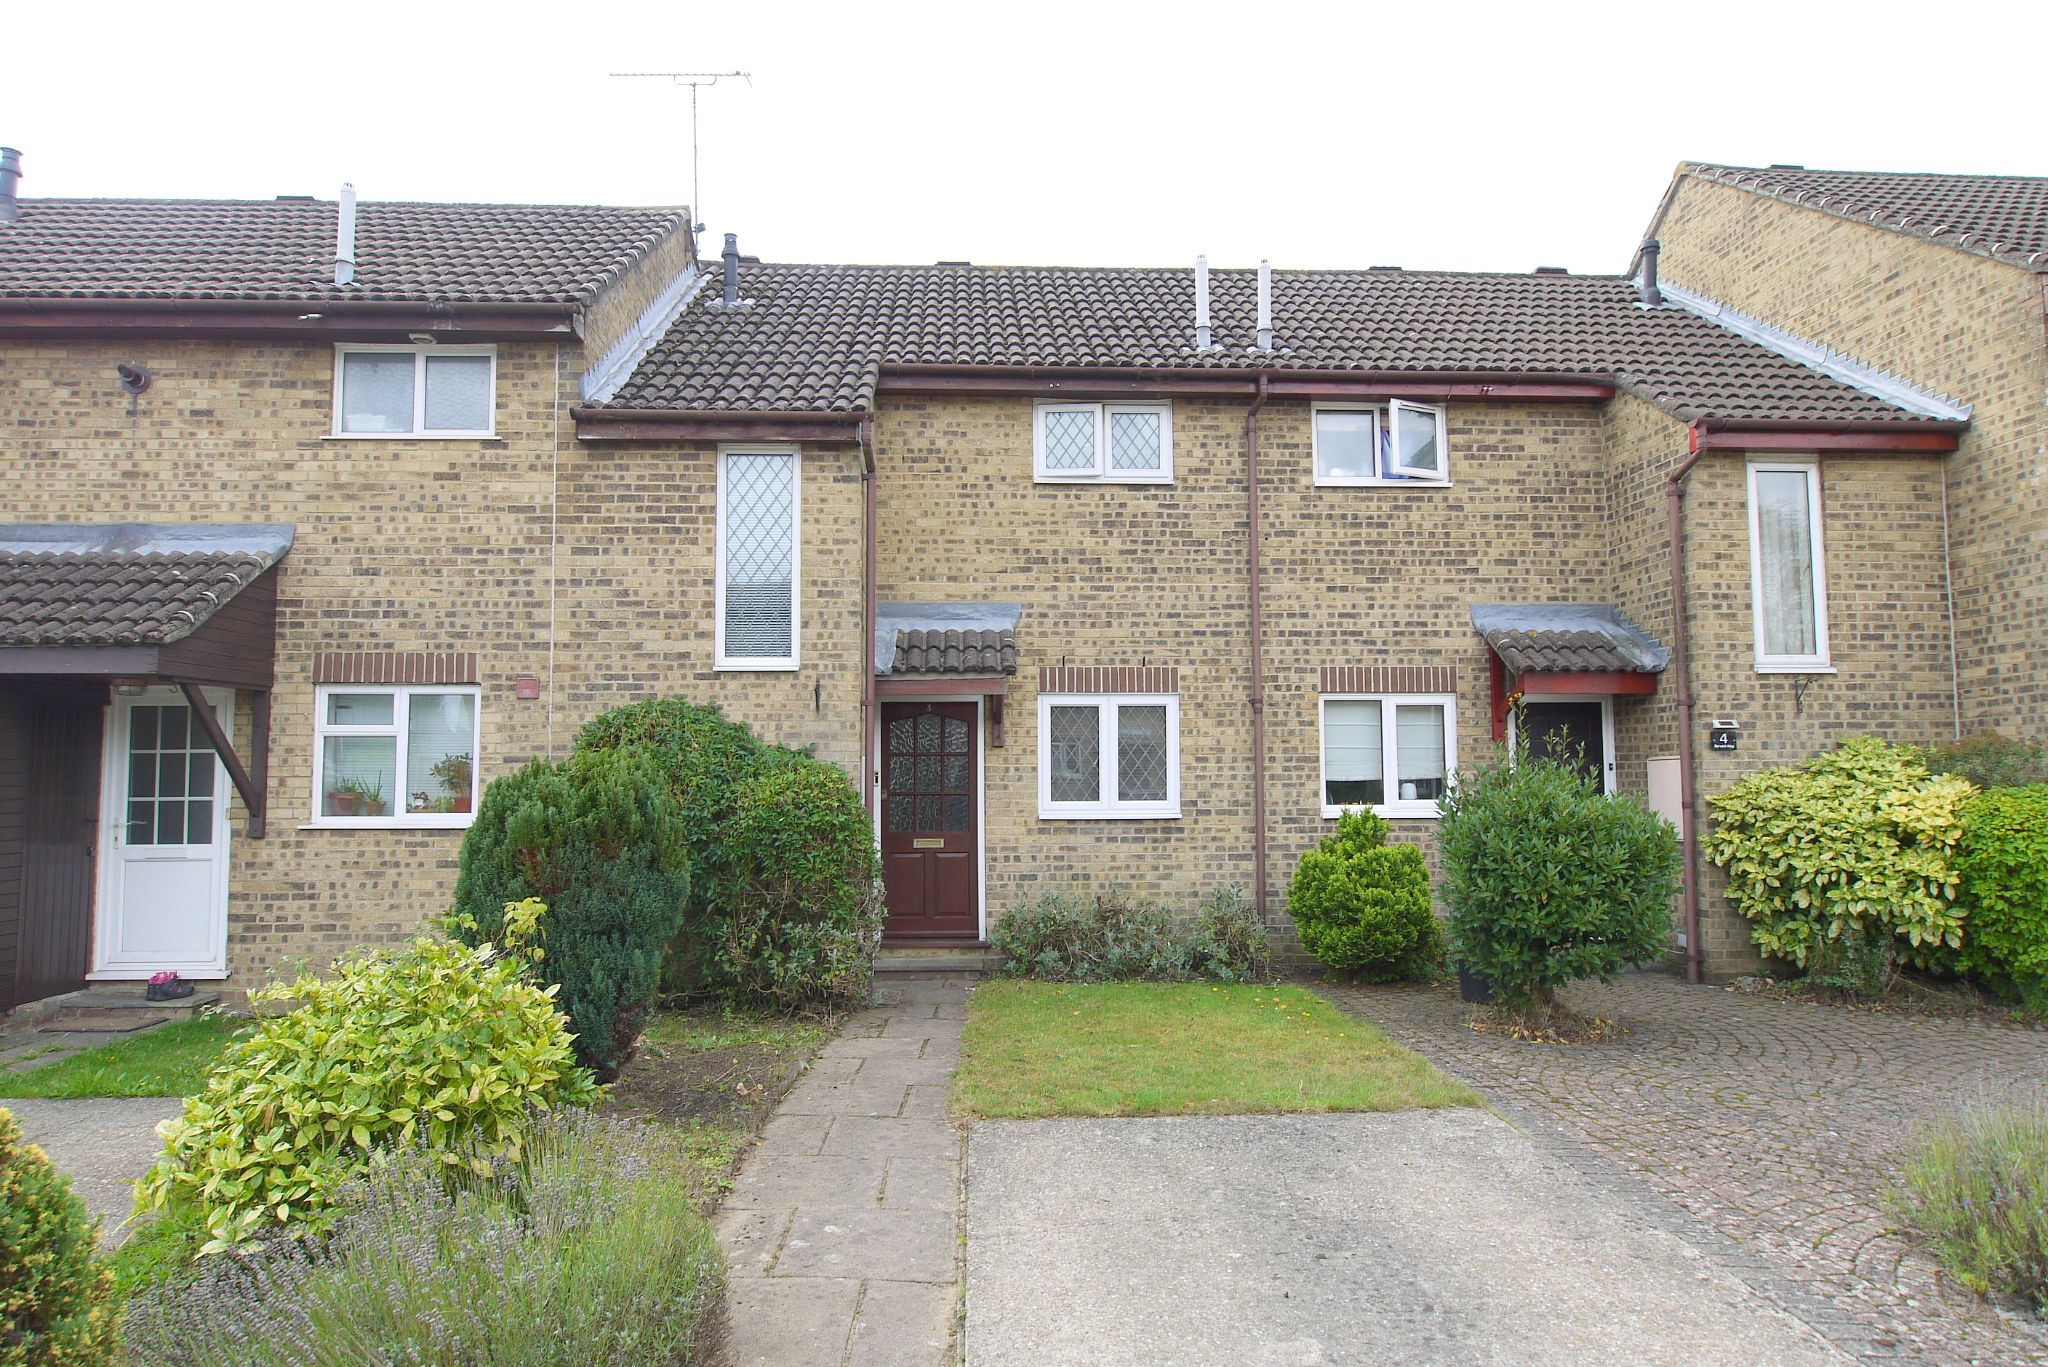 2 bedroom mid terraced house For Sale in Sevenoaks - Photograph 1